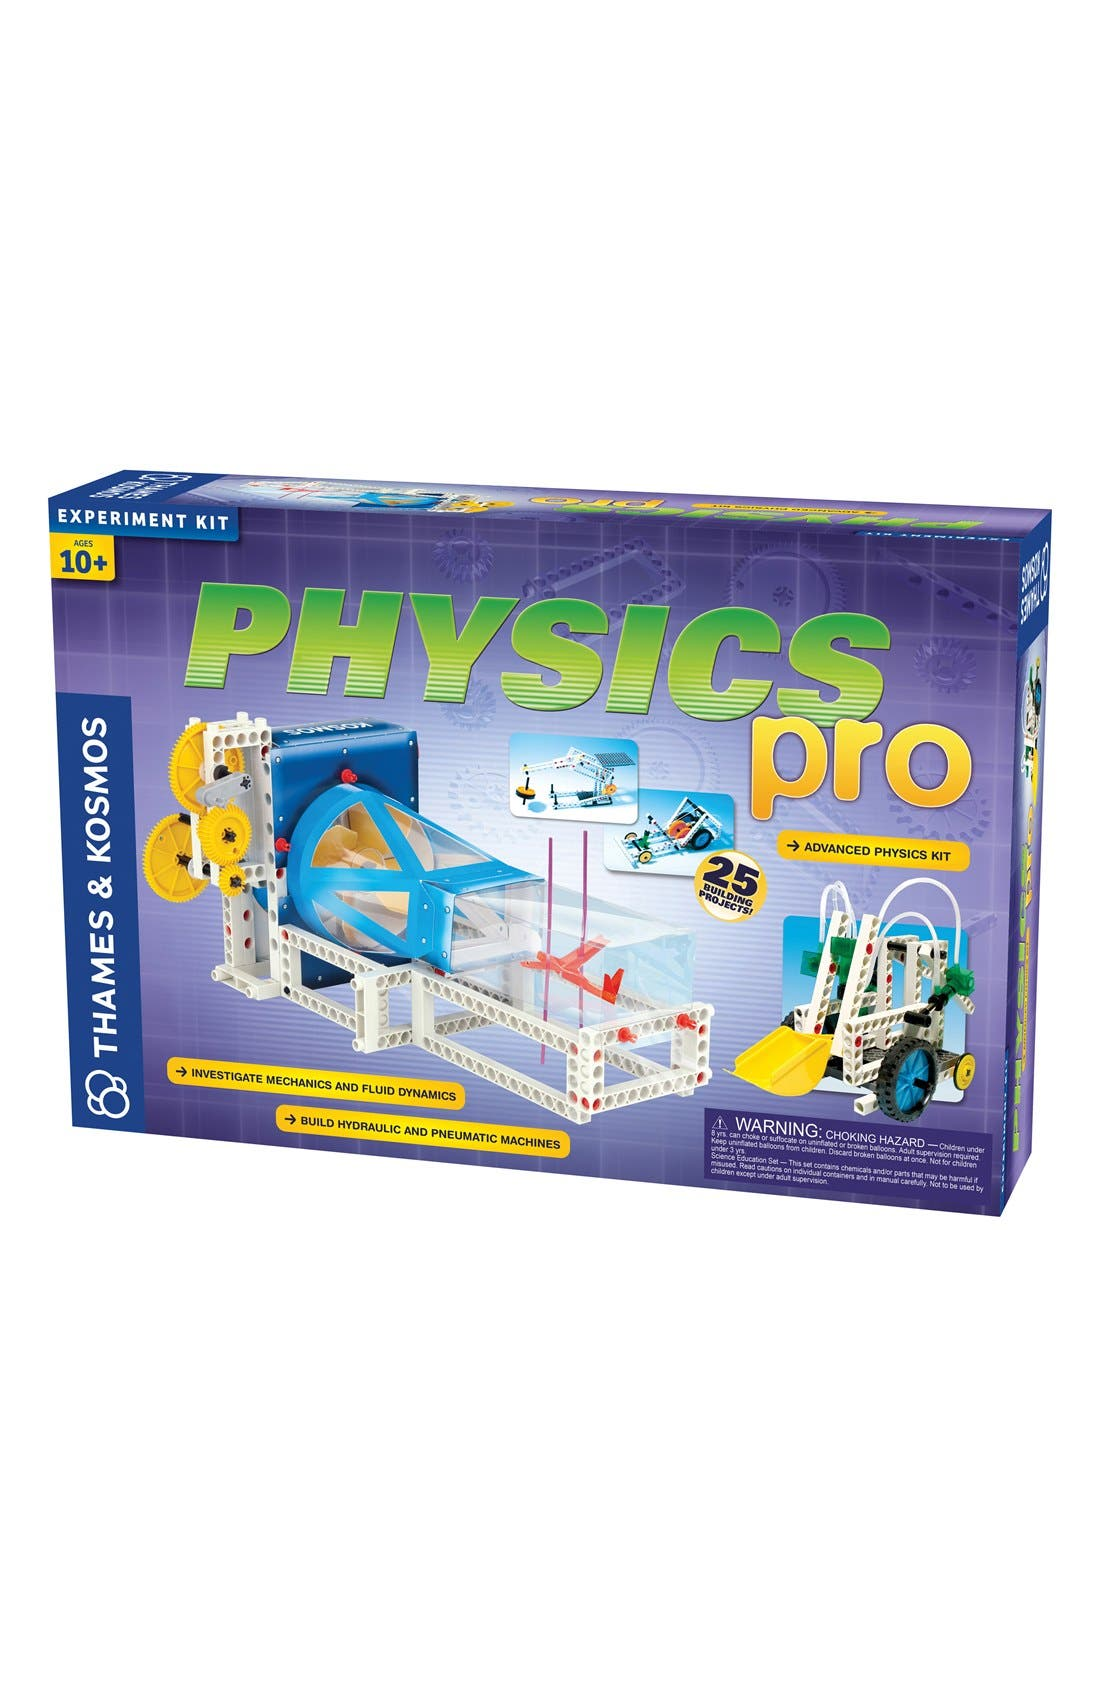 Thames & Kosmos 'Physics Pro - V2.0' Experiment Kit